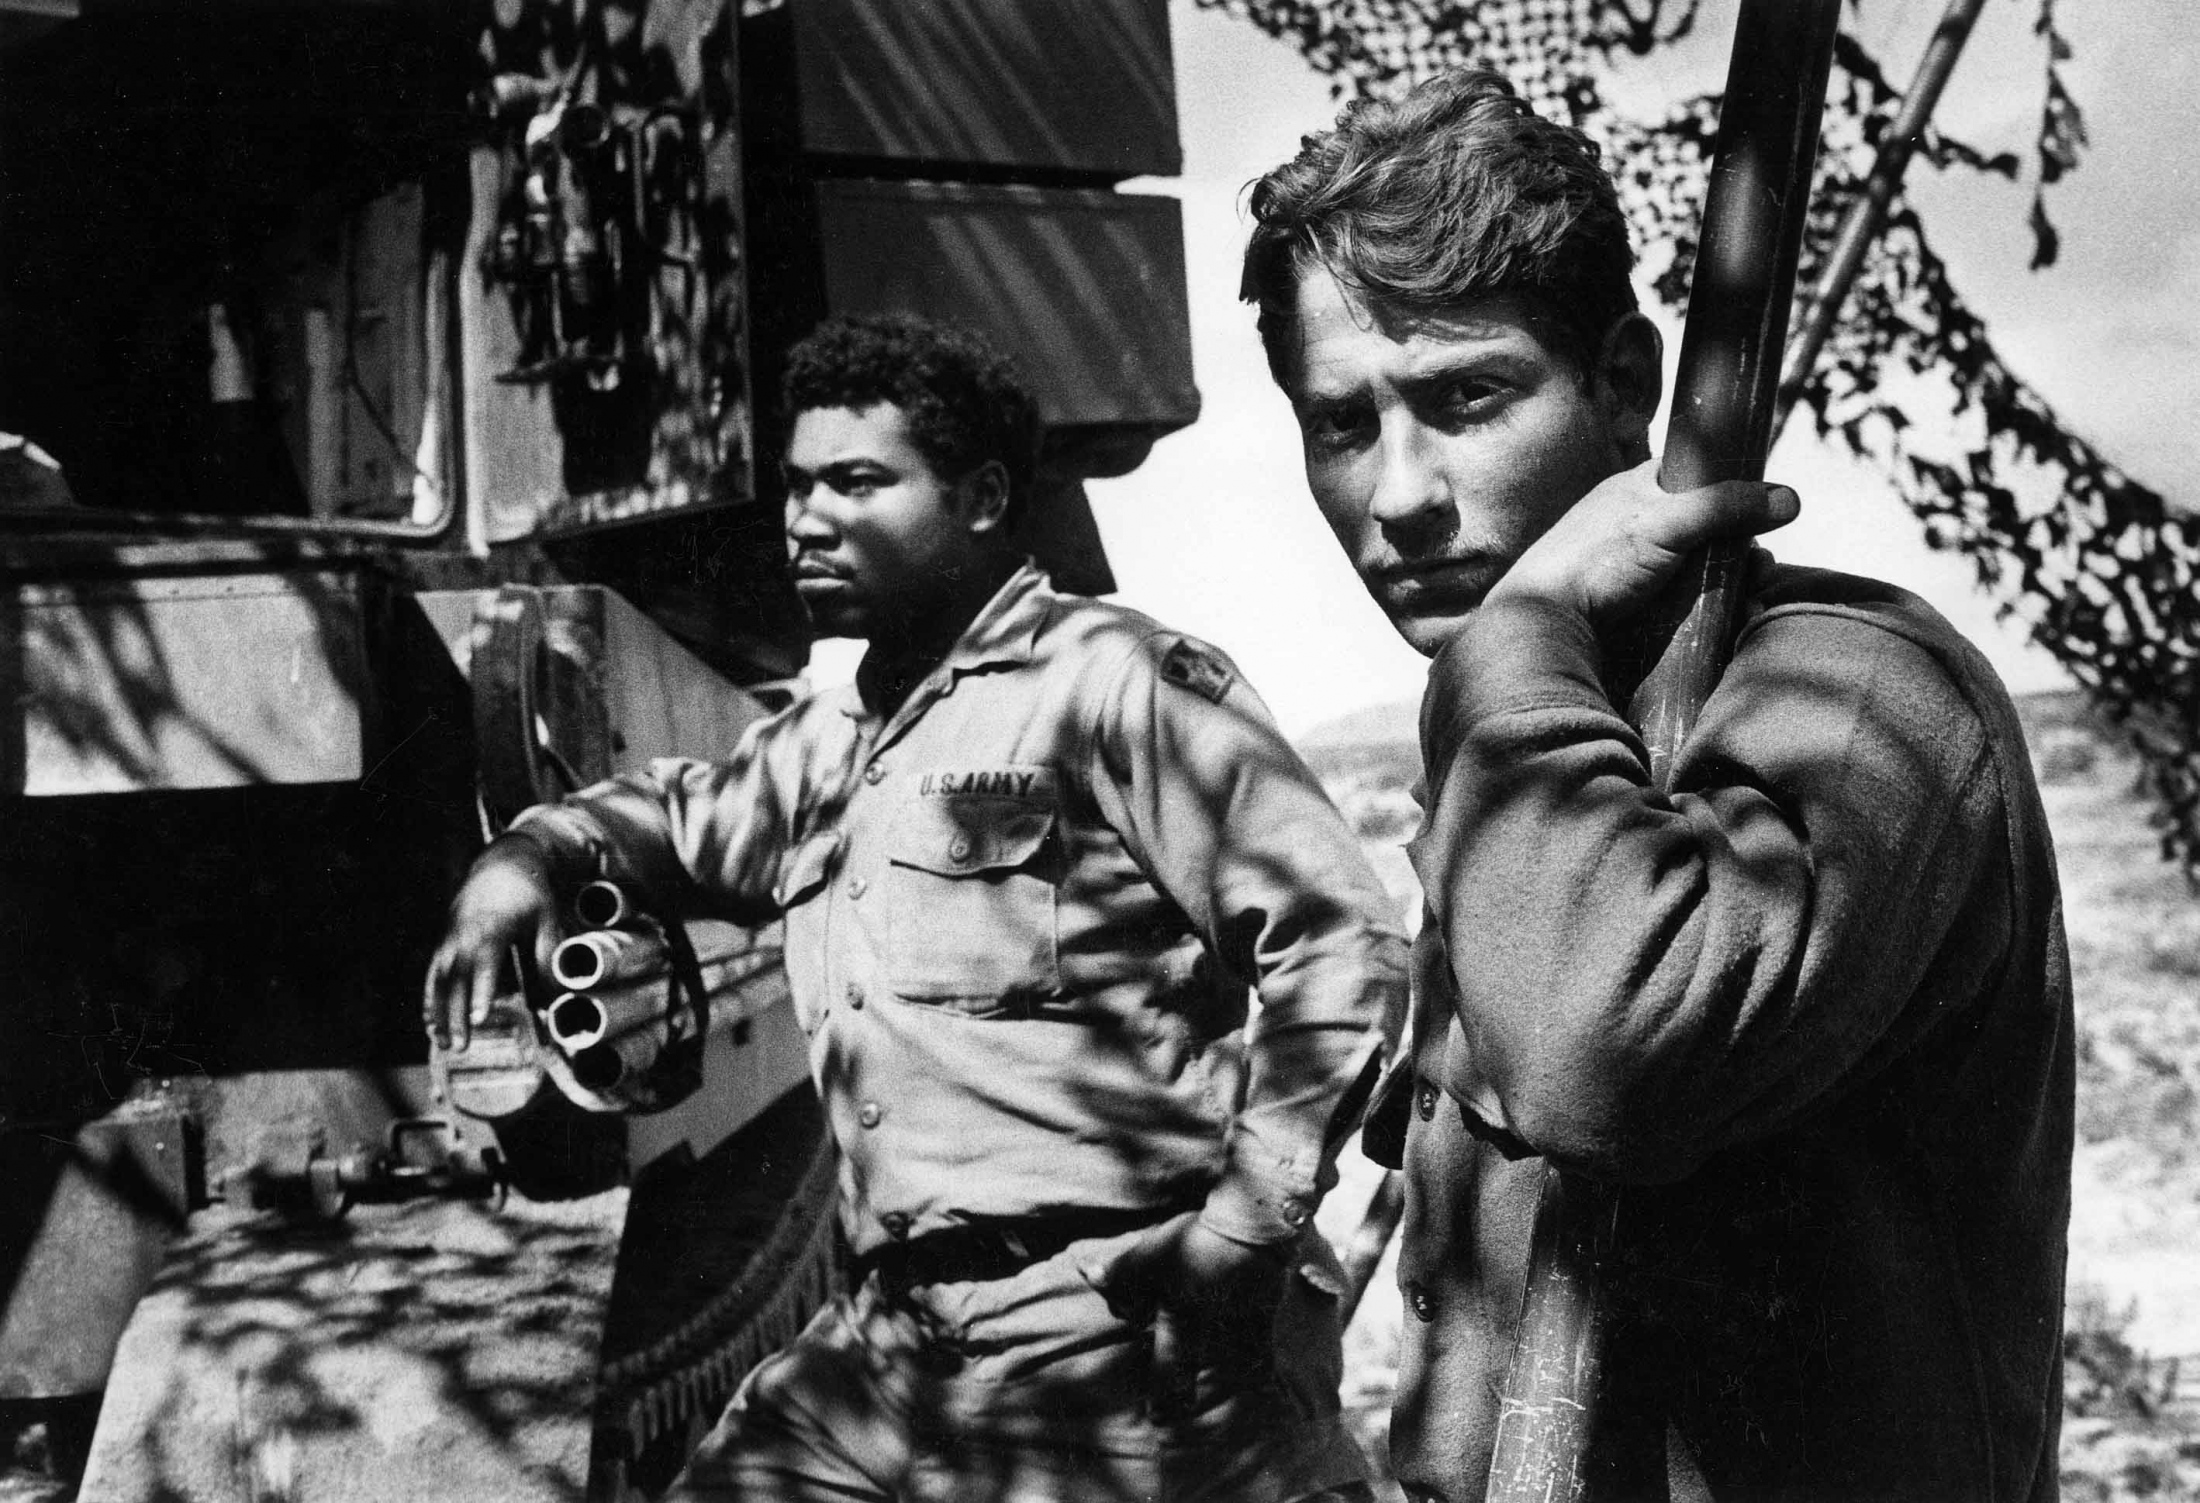 U.S. Army soldiers at rest during Operation Red Flag in the Mojave Desert, sometime around 1976, 1977. The Vietnam War had just ended about a year earlier and feelings toward the military were still sour as evidenced by these men's expressions. Or maybe they were just really tired.